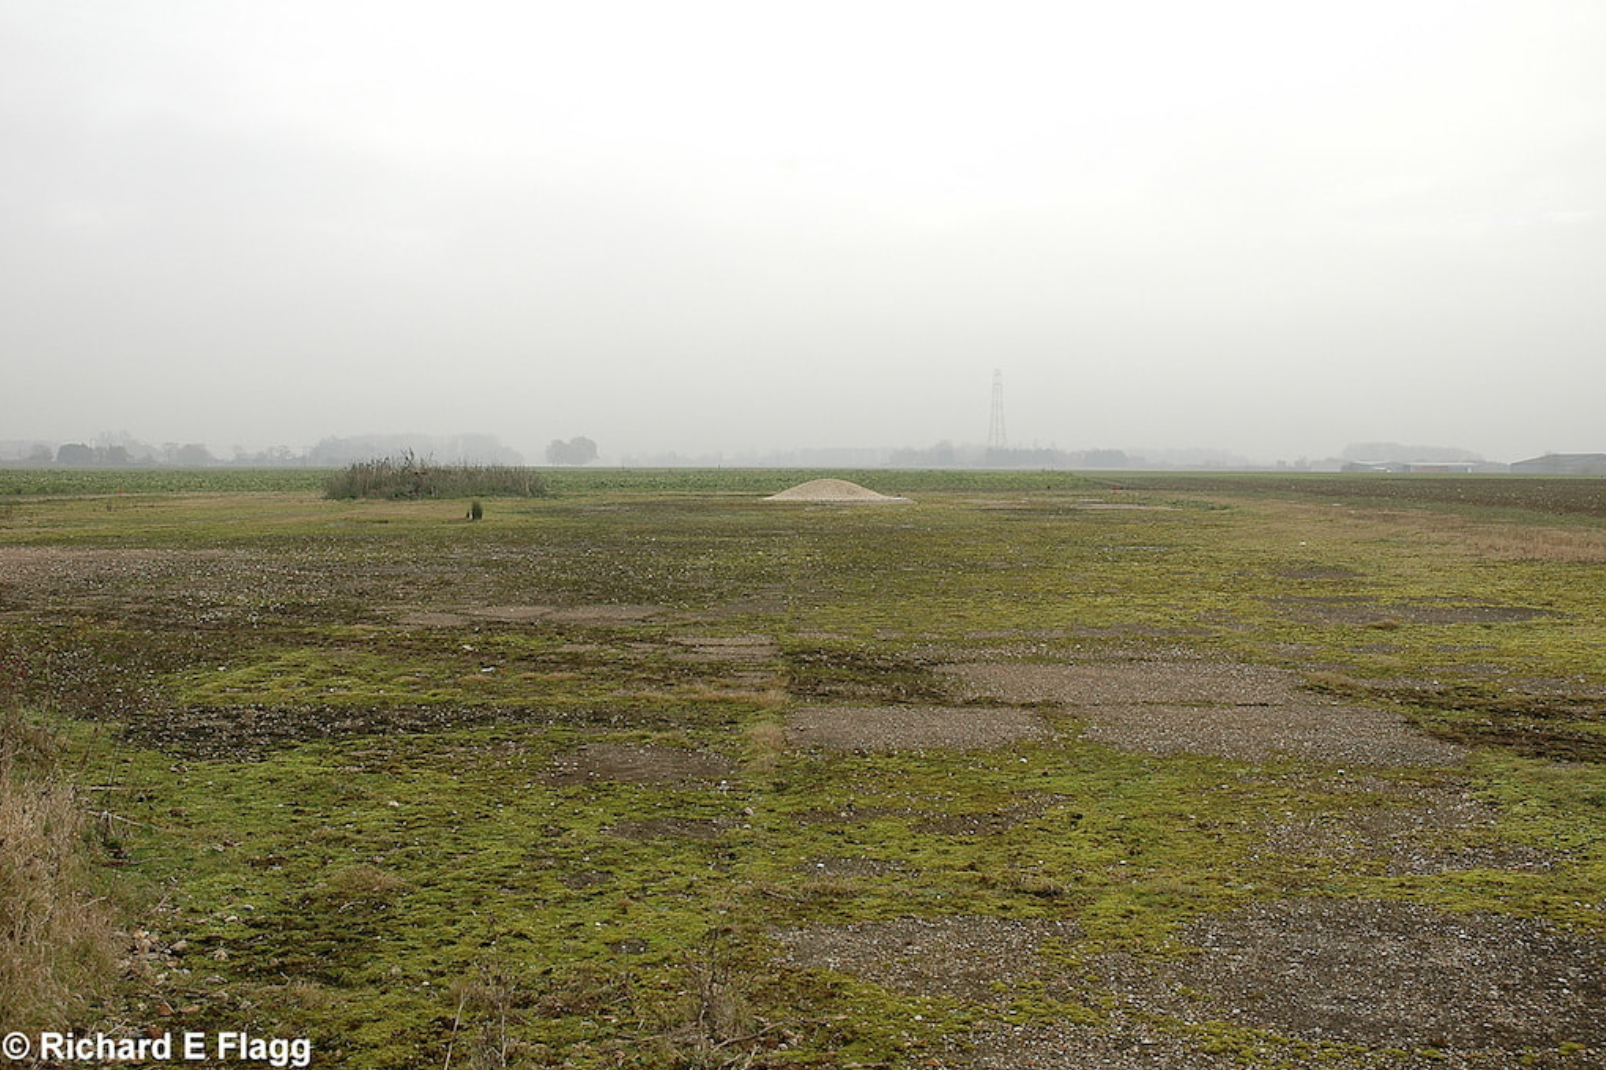 002Runway 09:27. Looking east from the A10 road that crosses the airfield - 27 November 2007.png